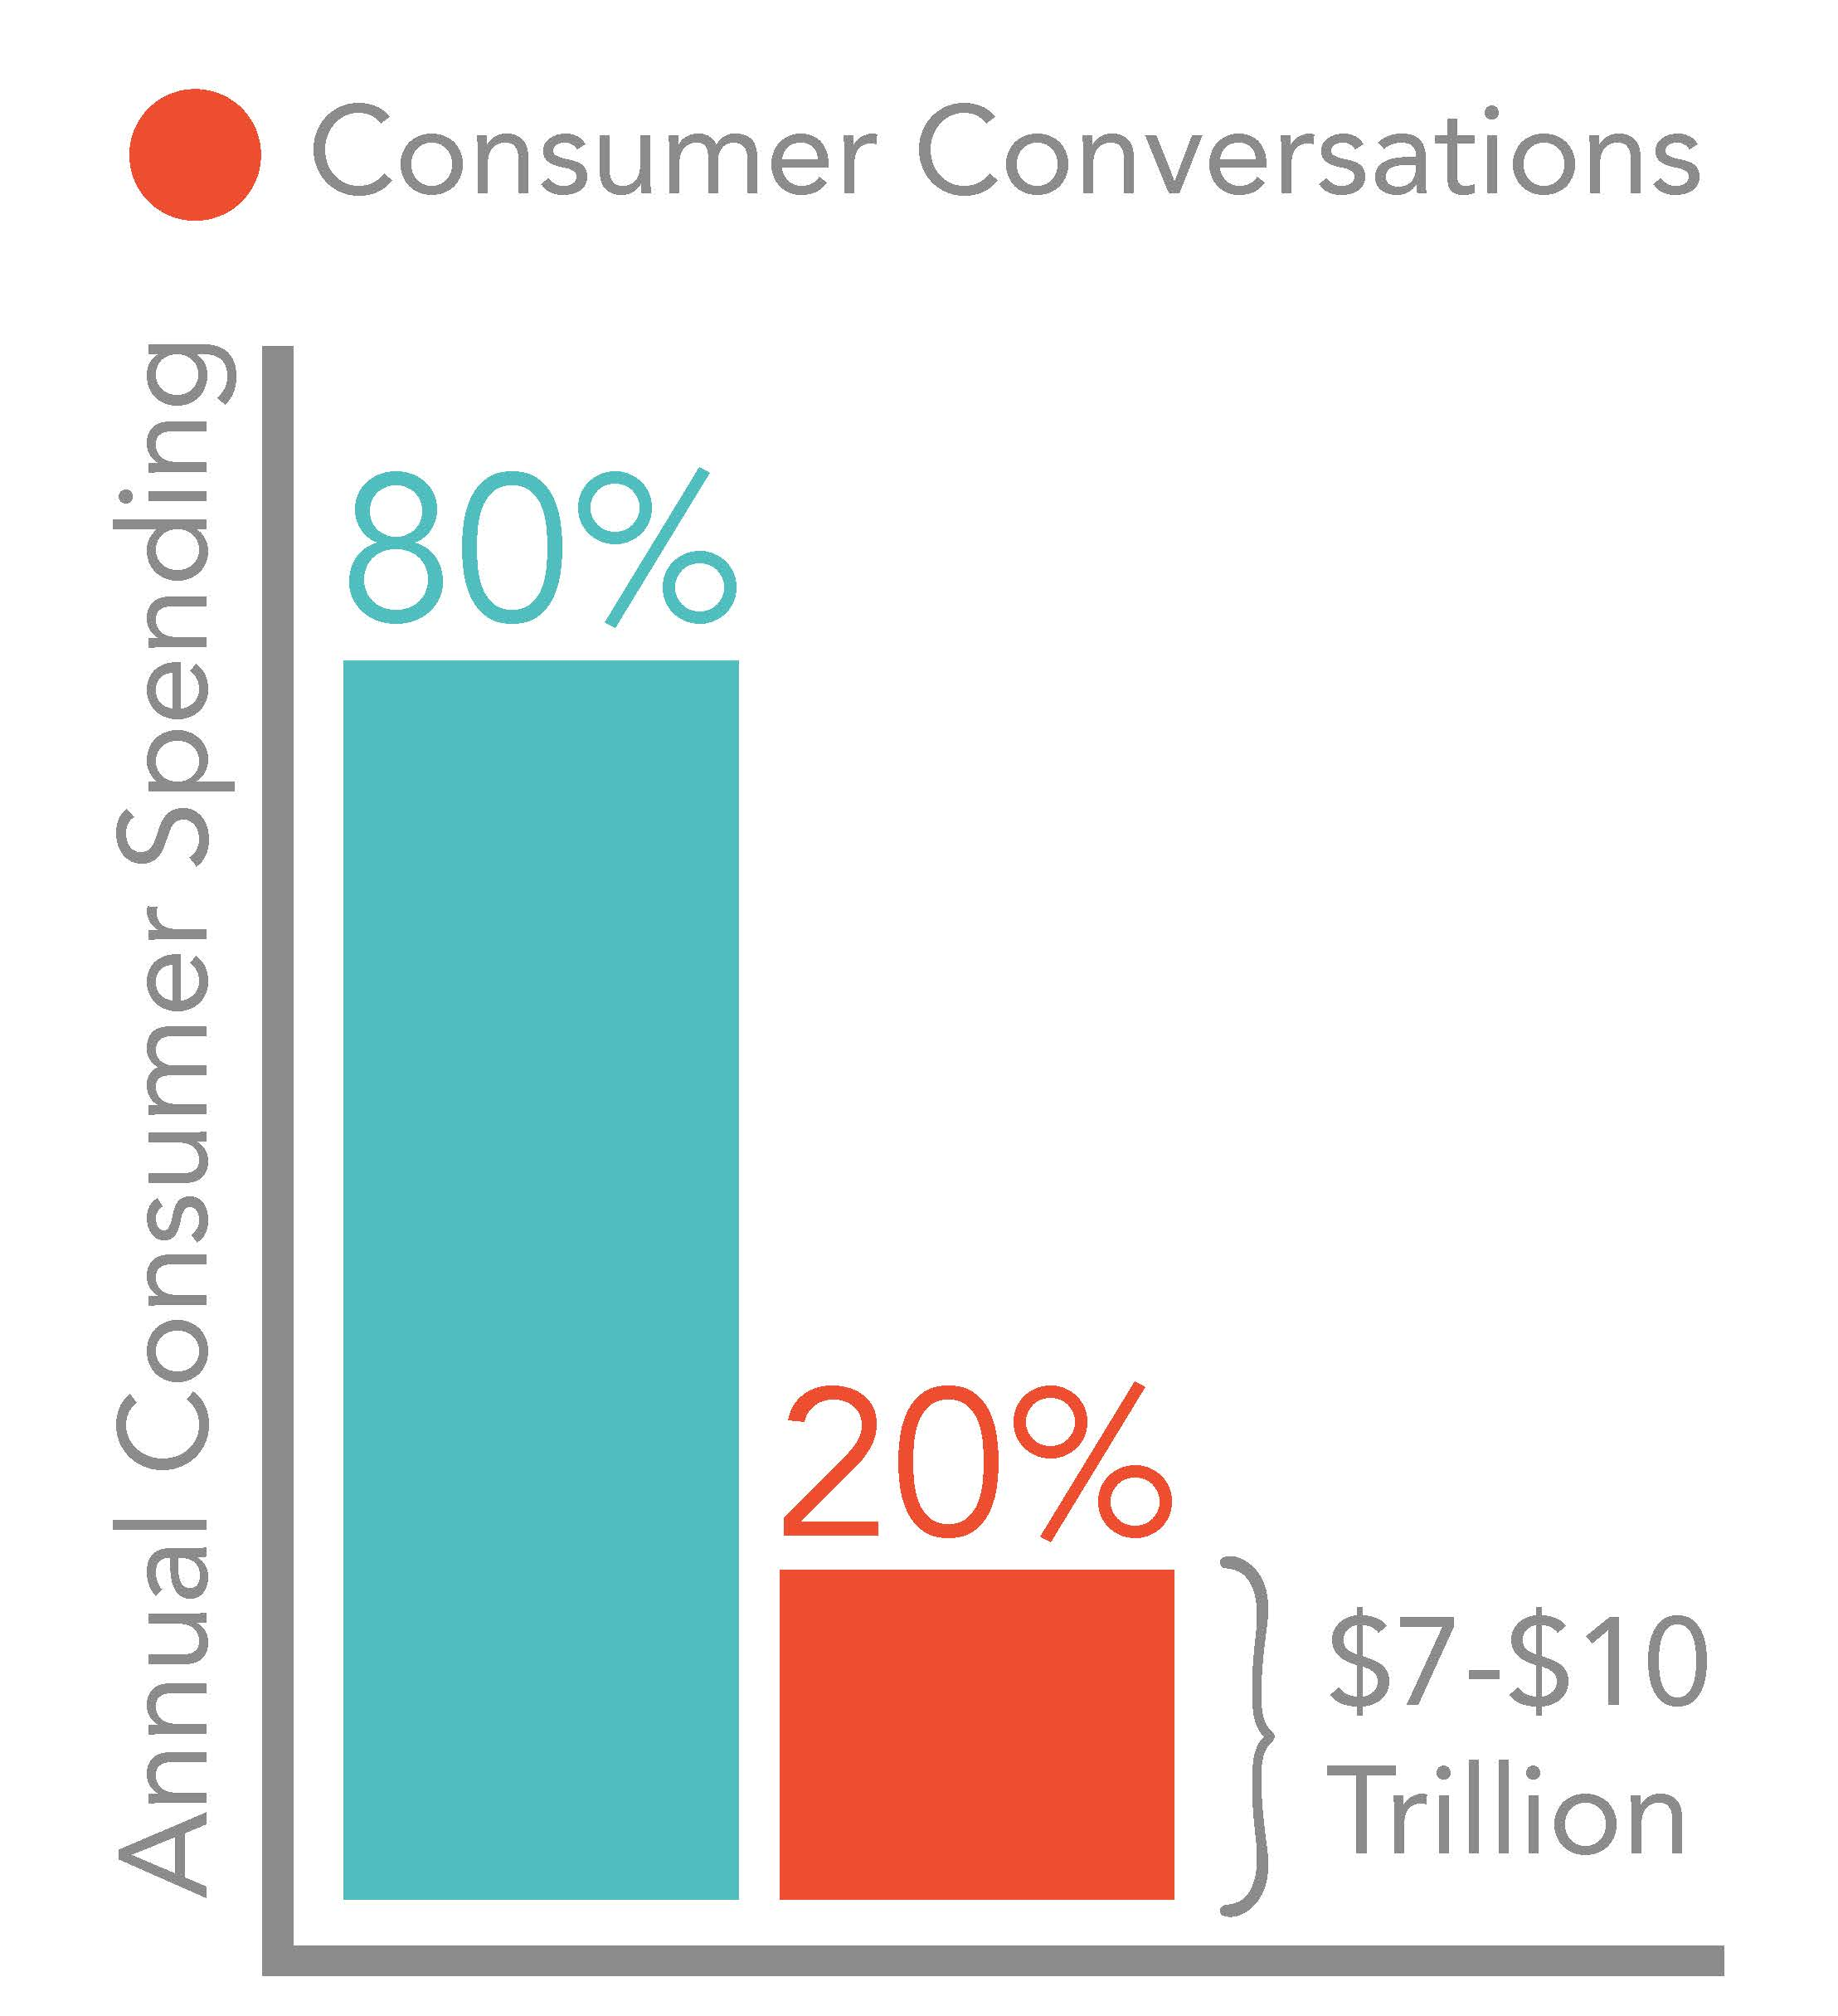 Both offline (face-to-face) and online (social media) – drive 19 percent of sales